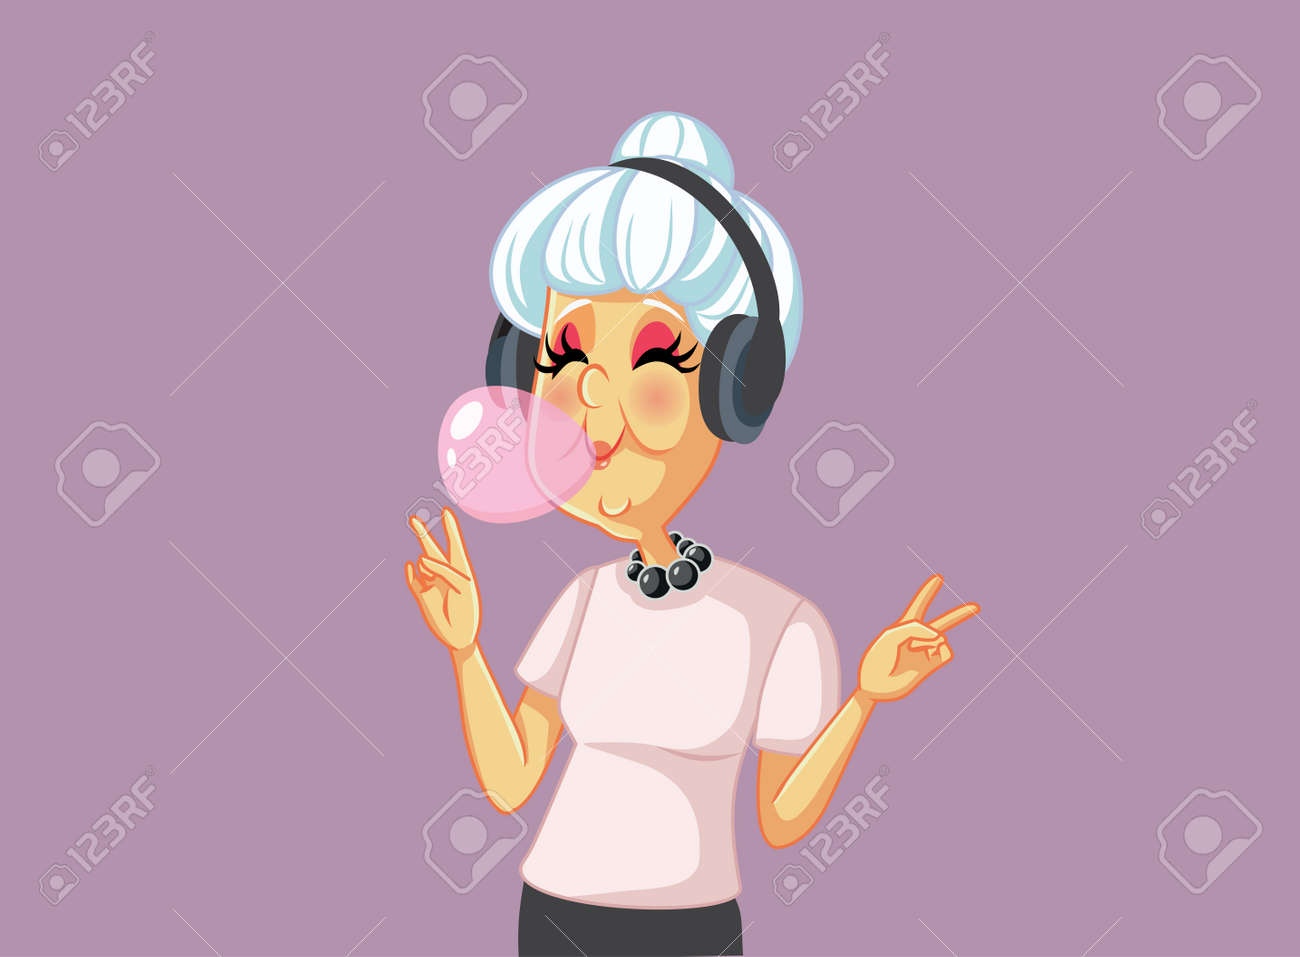 Cool Grandmother Chewing Bubble Gum Listening to Music - 171466232